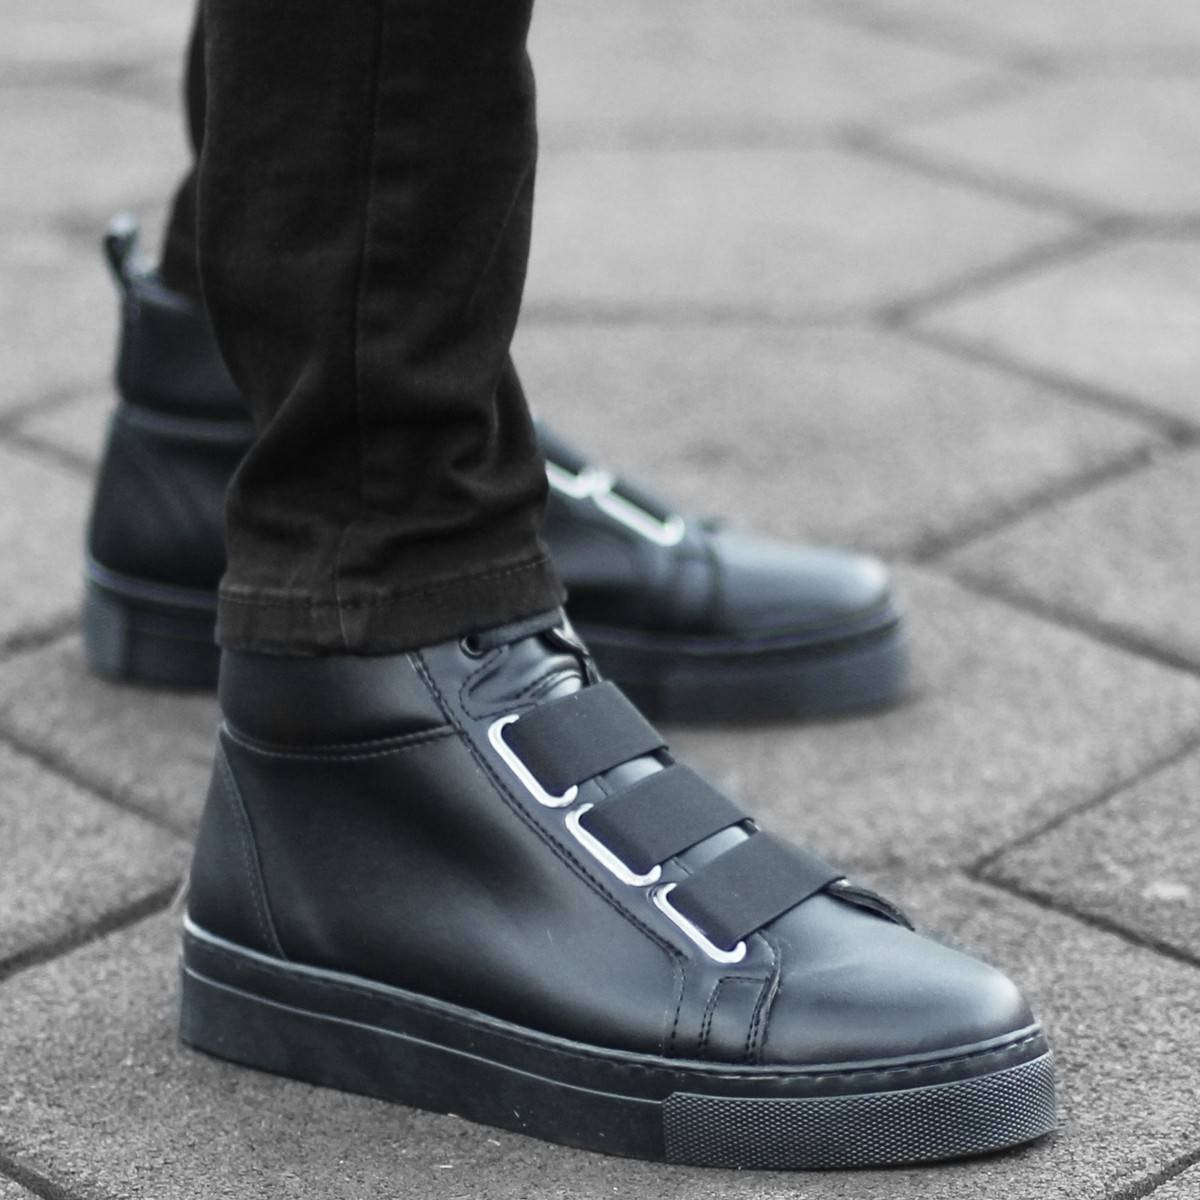 Urban Sneaker Boots in Black Mv Premium Brand - 1